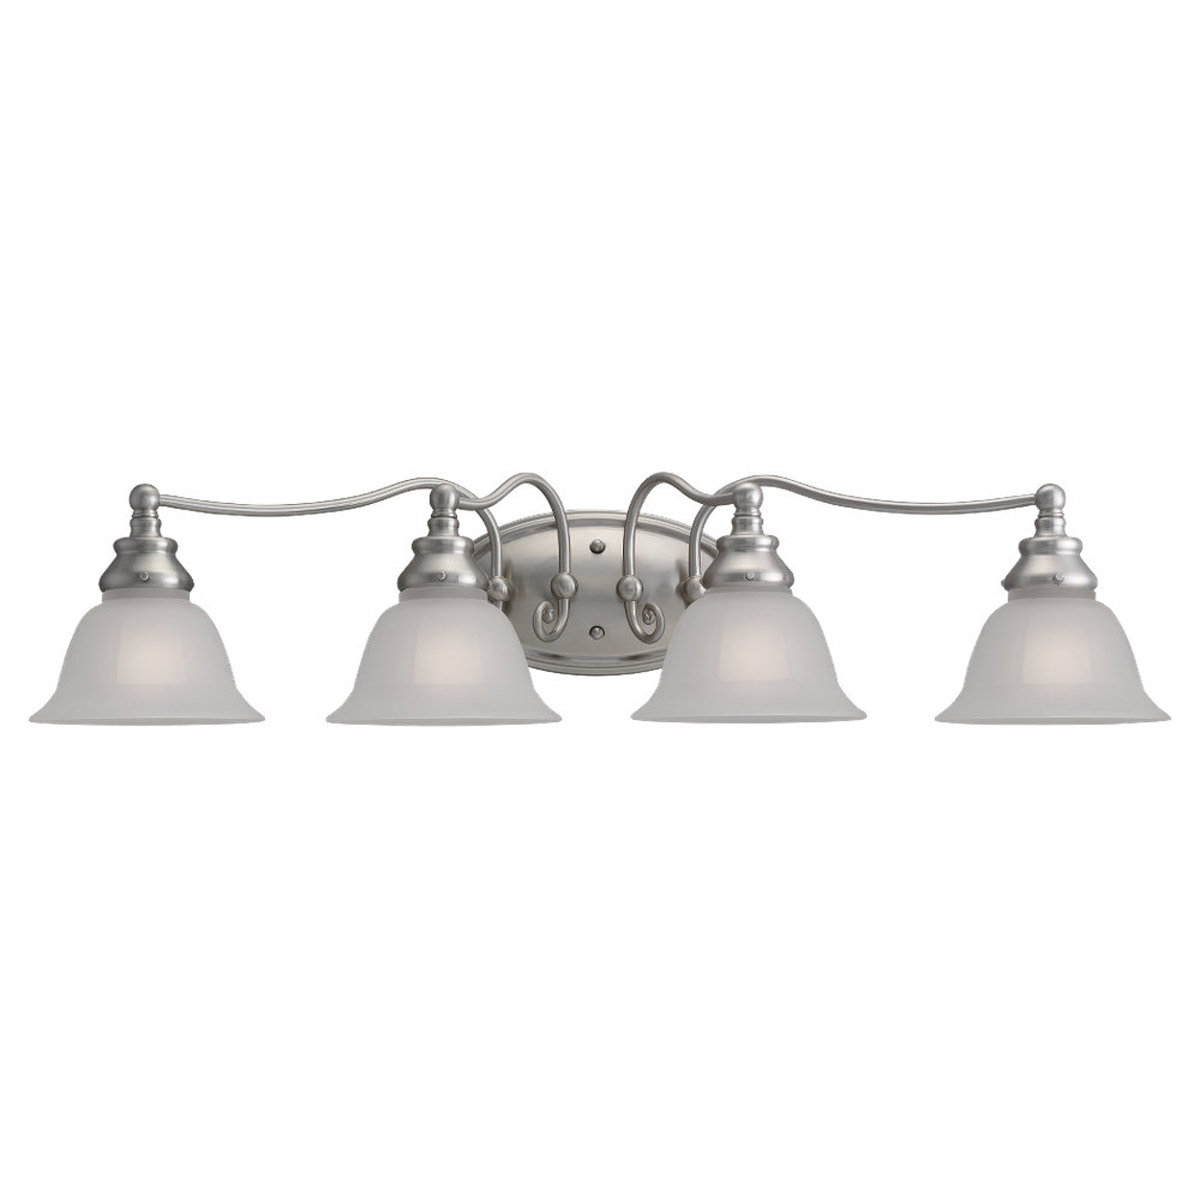 Sea Gull Lighting Canterbury 4 Light Bath Vanity in Brushed Nickel 44653-962